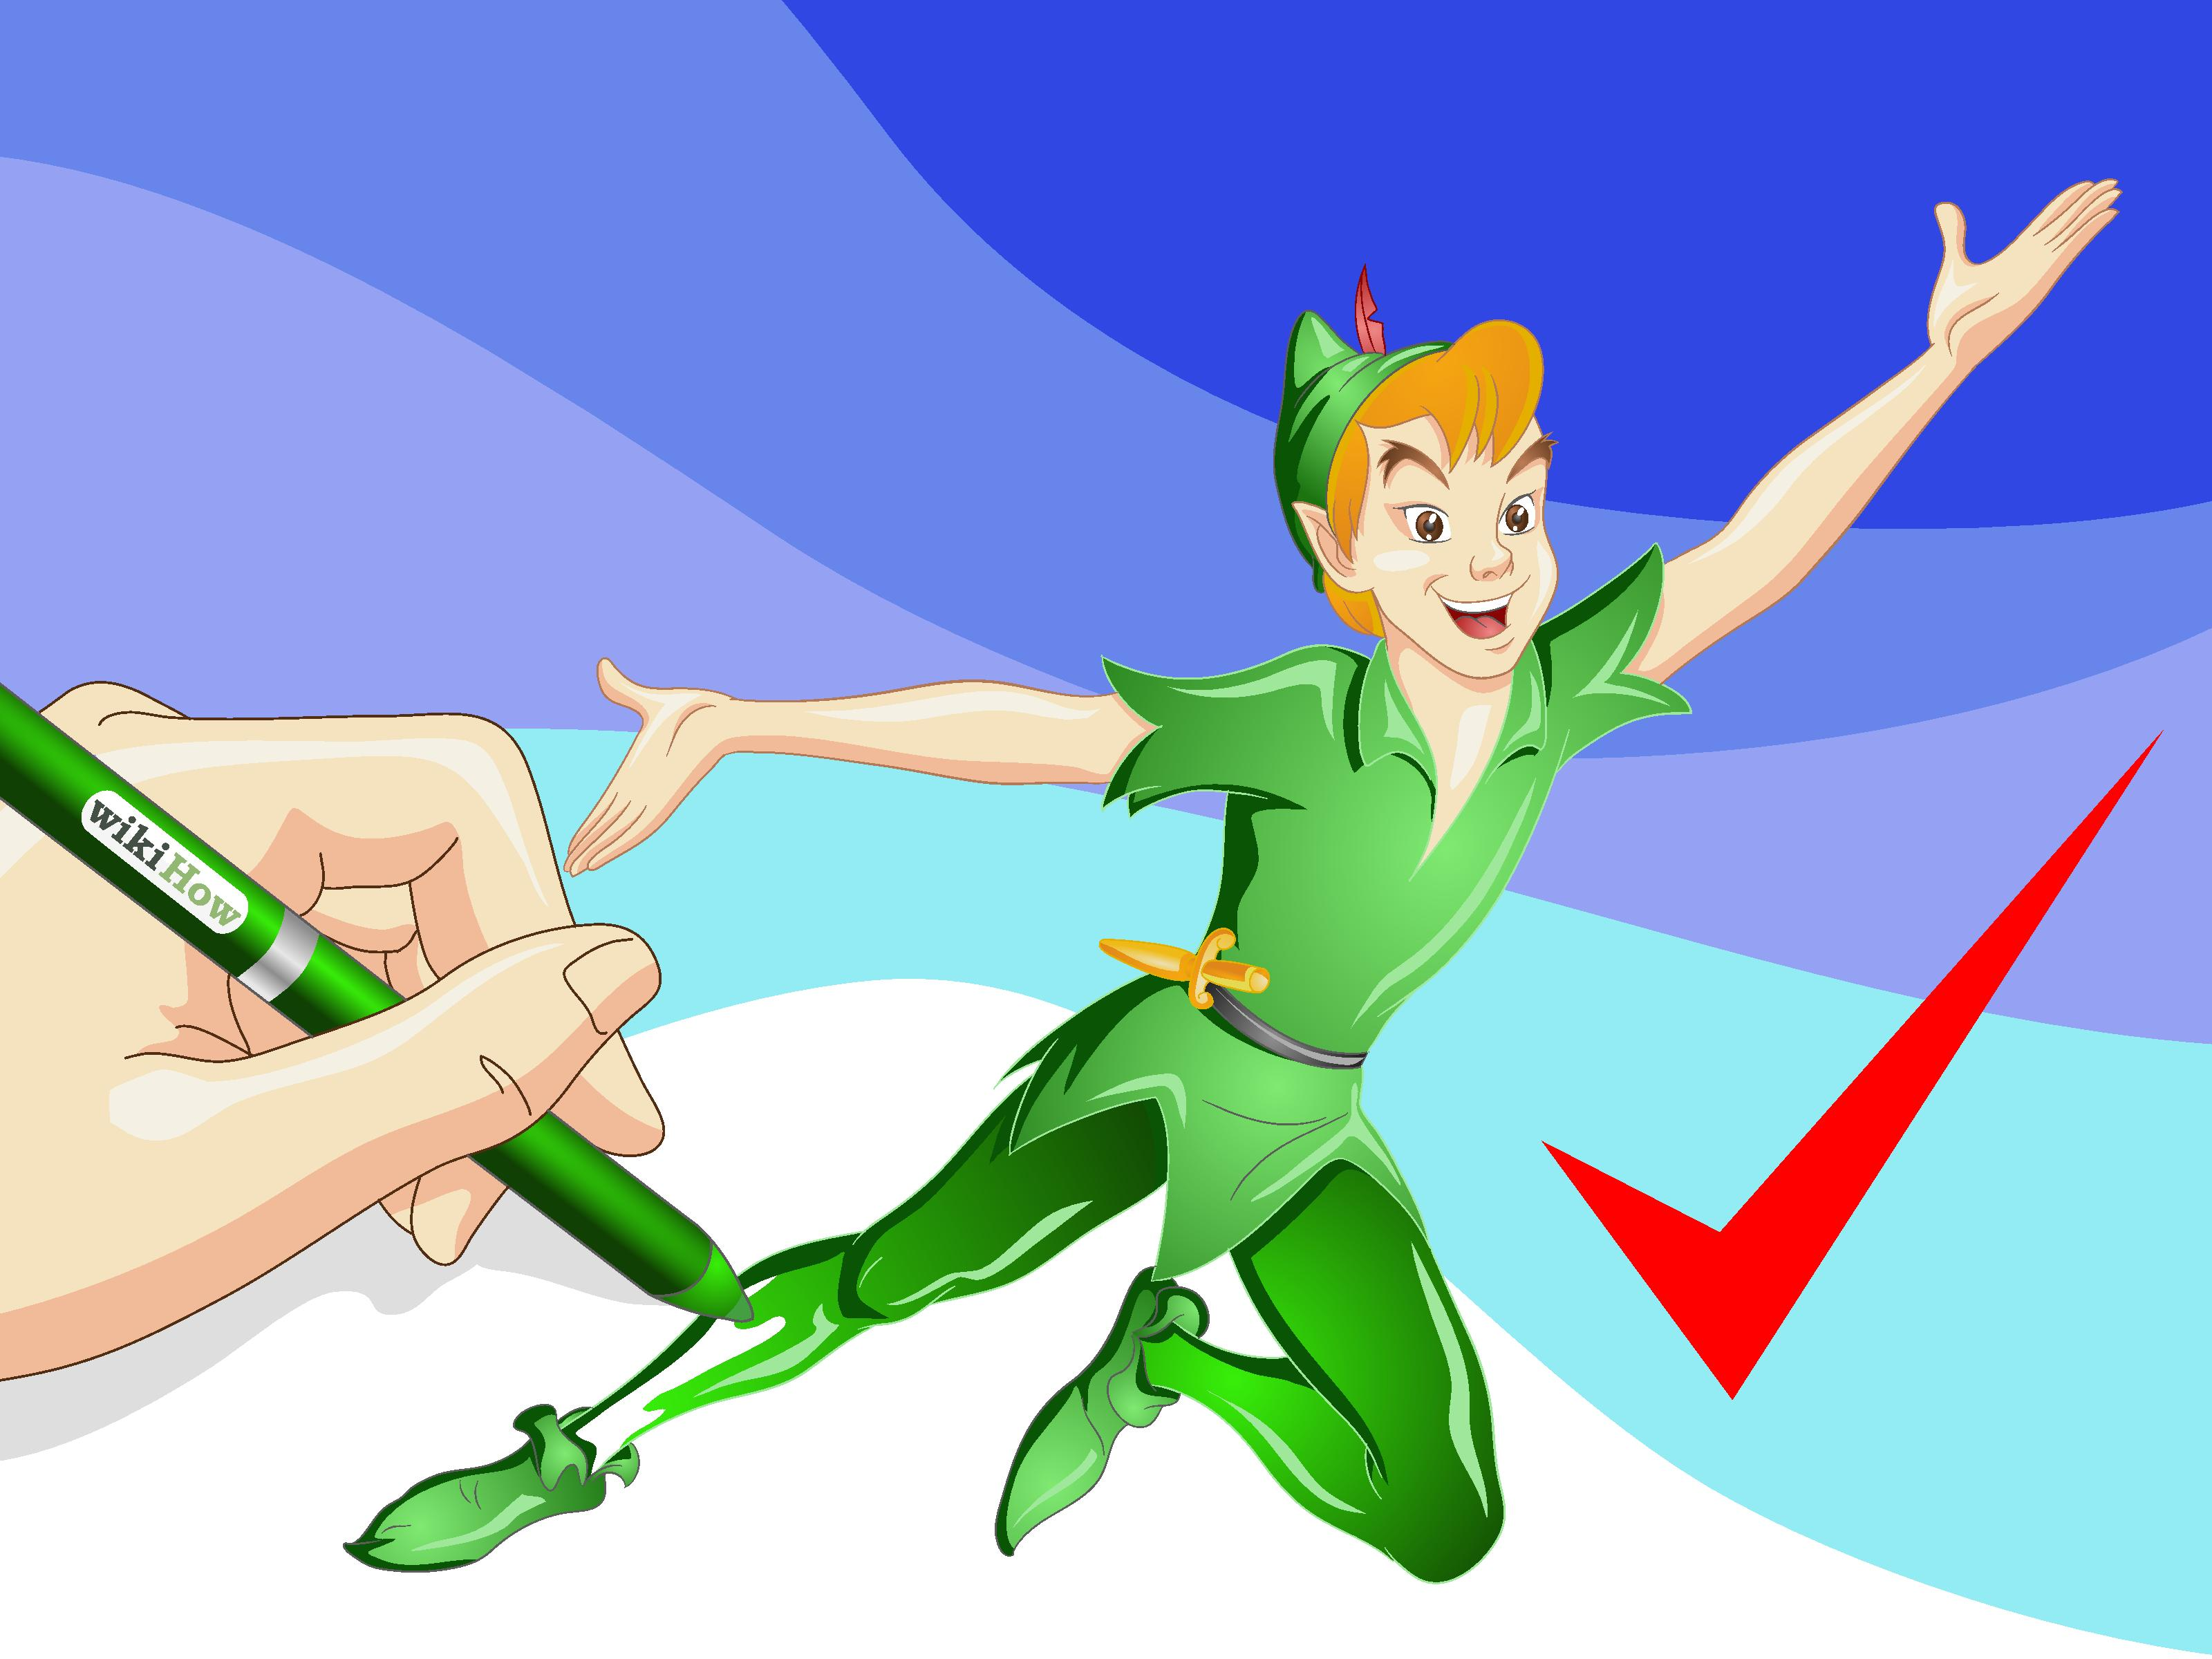 Pete the clipart peter pan. Drawing at getdrawings com